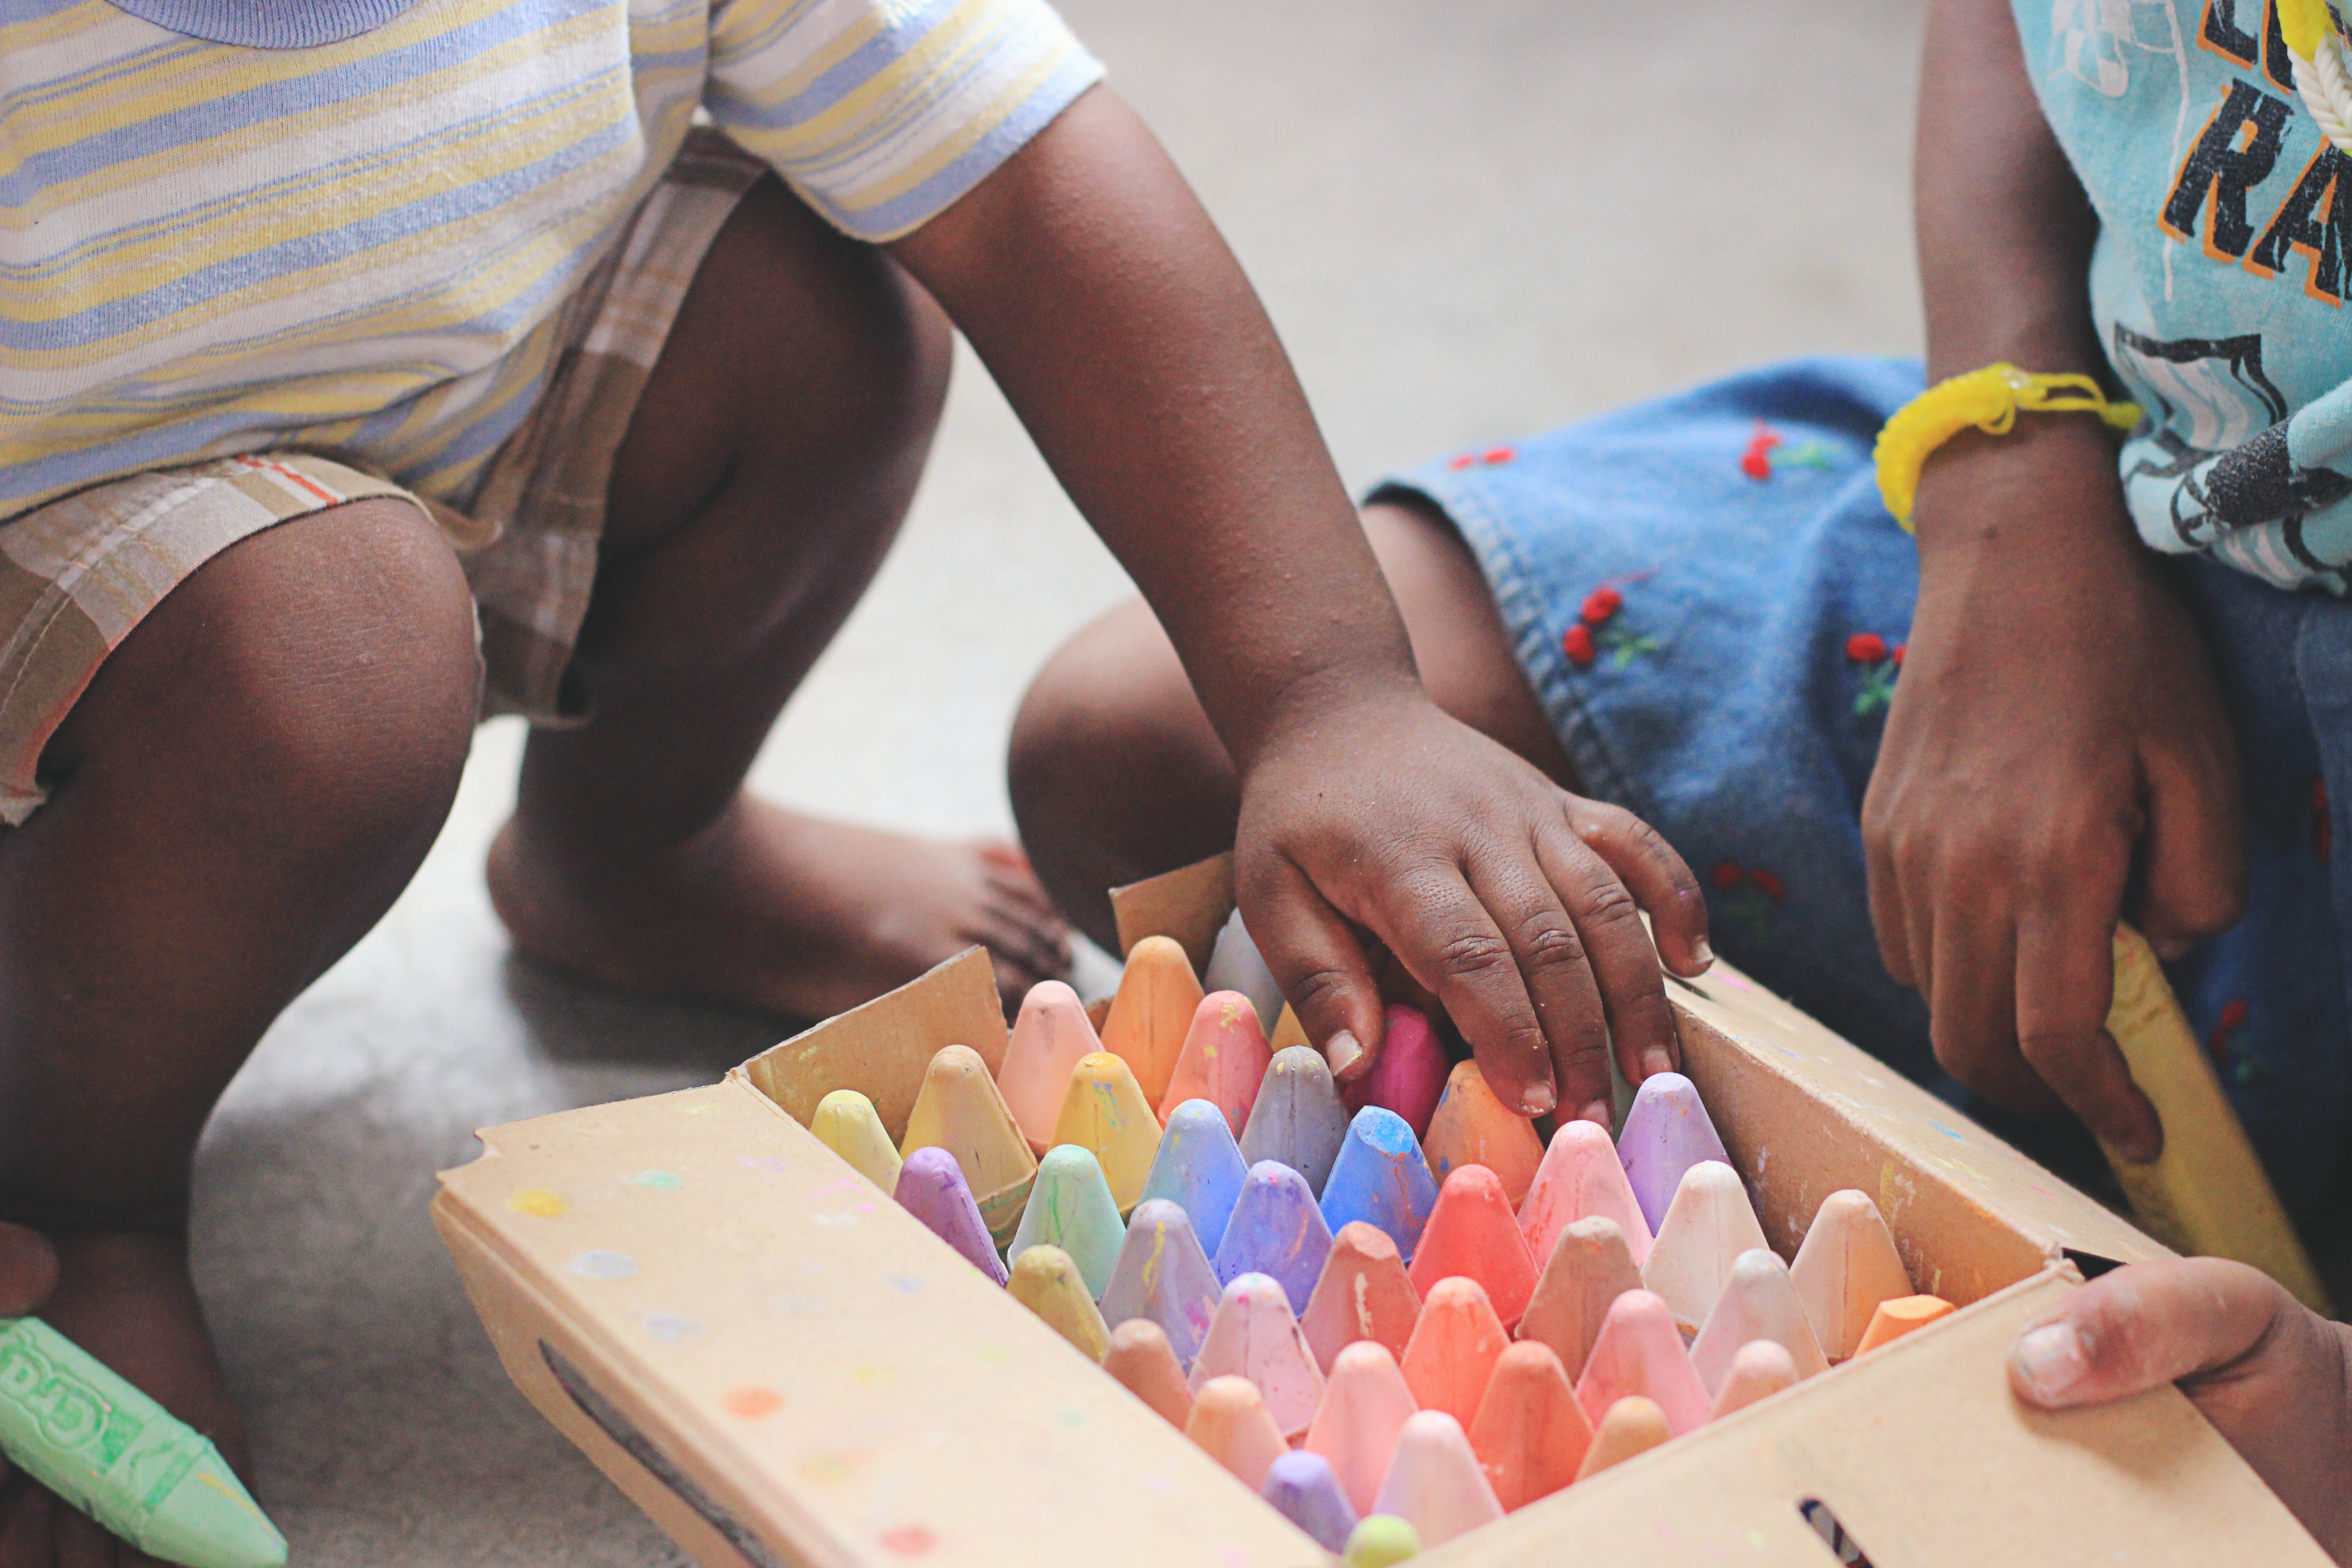 Research Shows Child Care Not Linked to Spread of COVID-19 Early in Pandemic